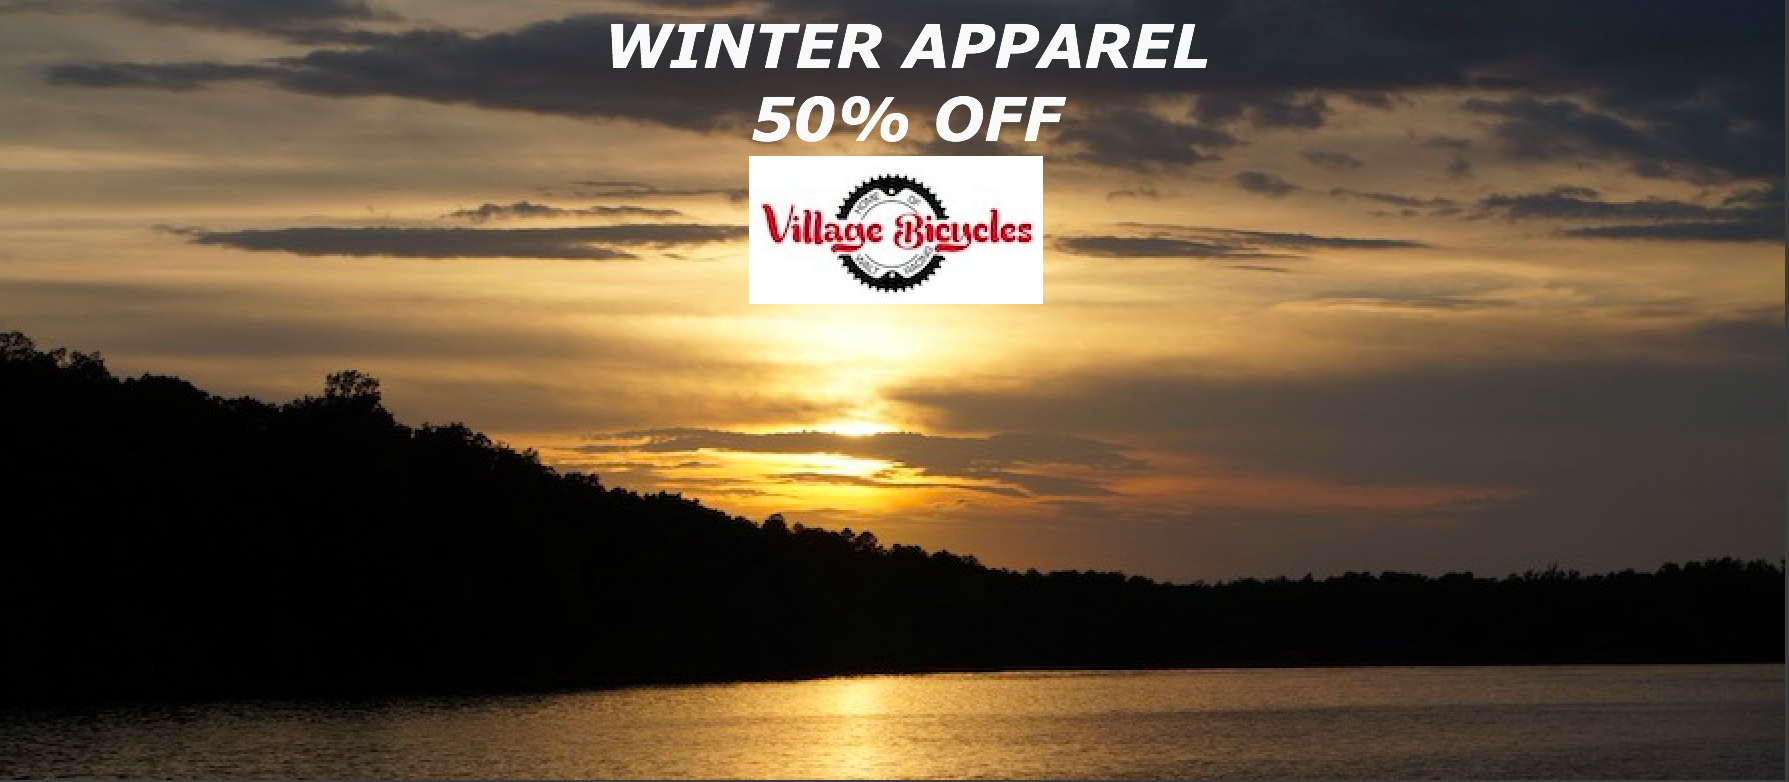 Village Bicycles Winter Apparel sale